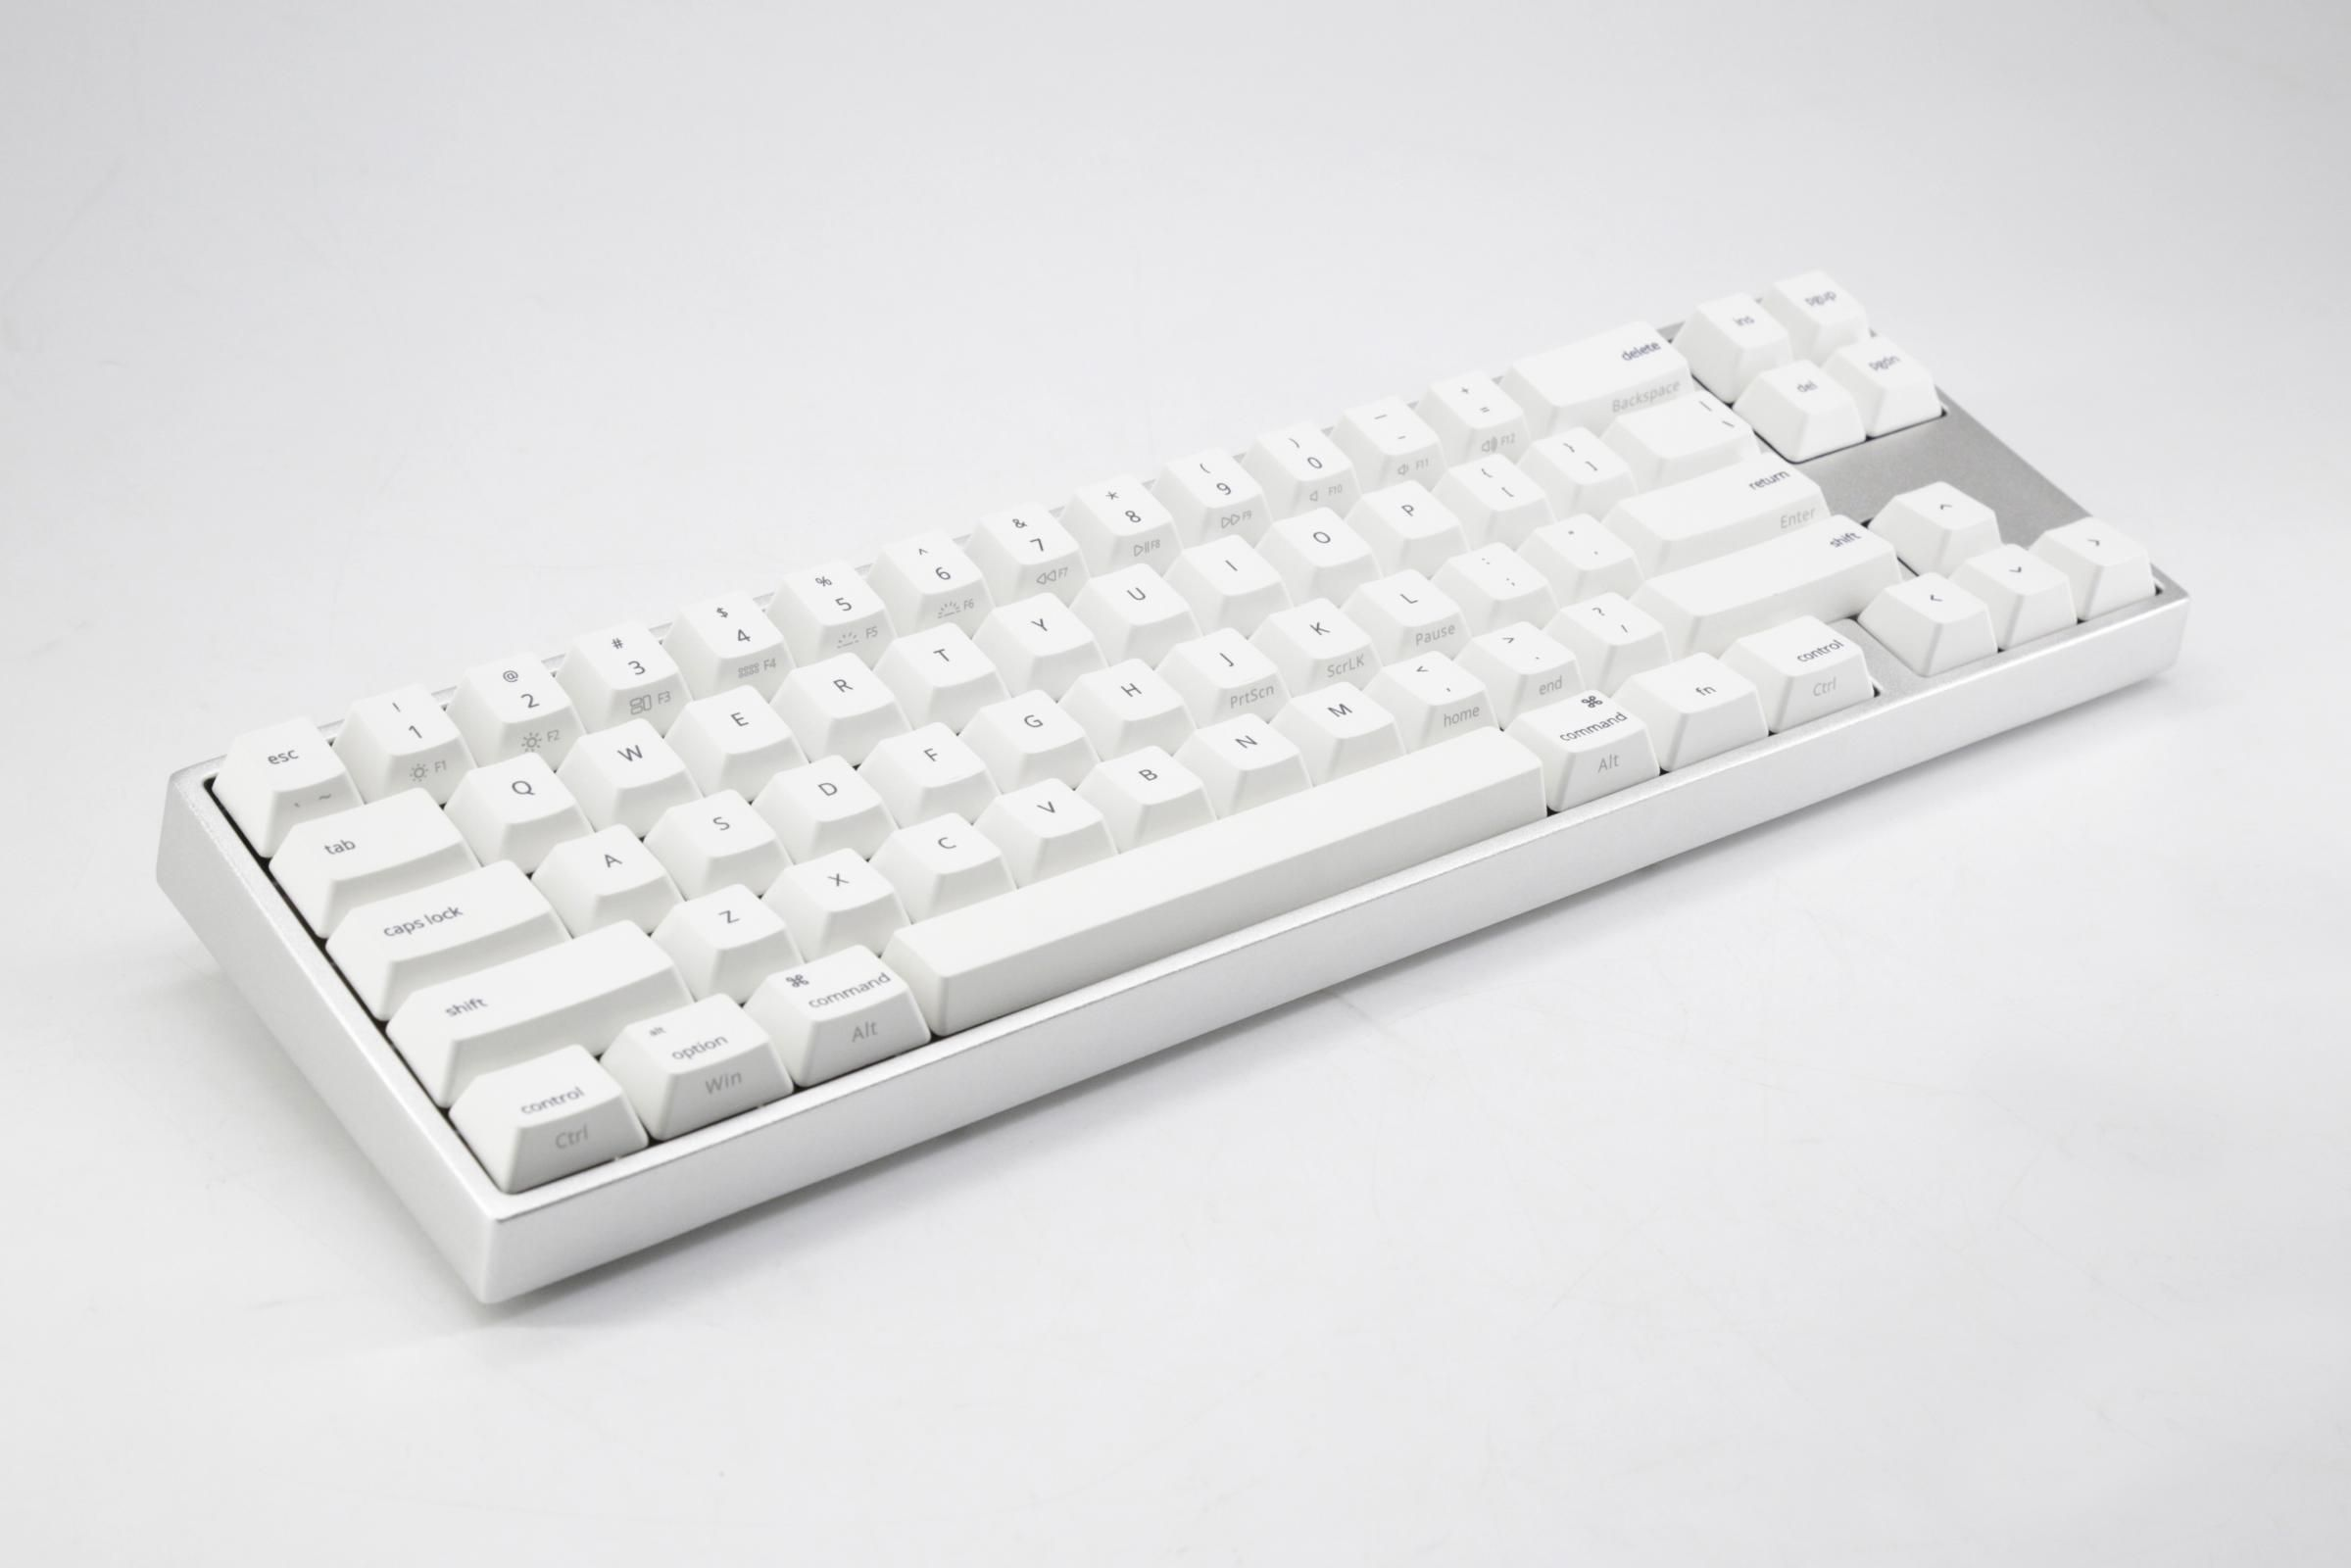 768ea0d79b5 Varmilo VA68M V3 Mac White LED 60% Dye Sub PBT Mechanical Keyboard with  Cherry MX Brown, Blue, Black, Red, Clear, Silent Red, Silver, or Silent  Black ...